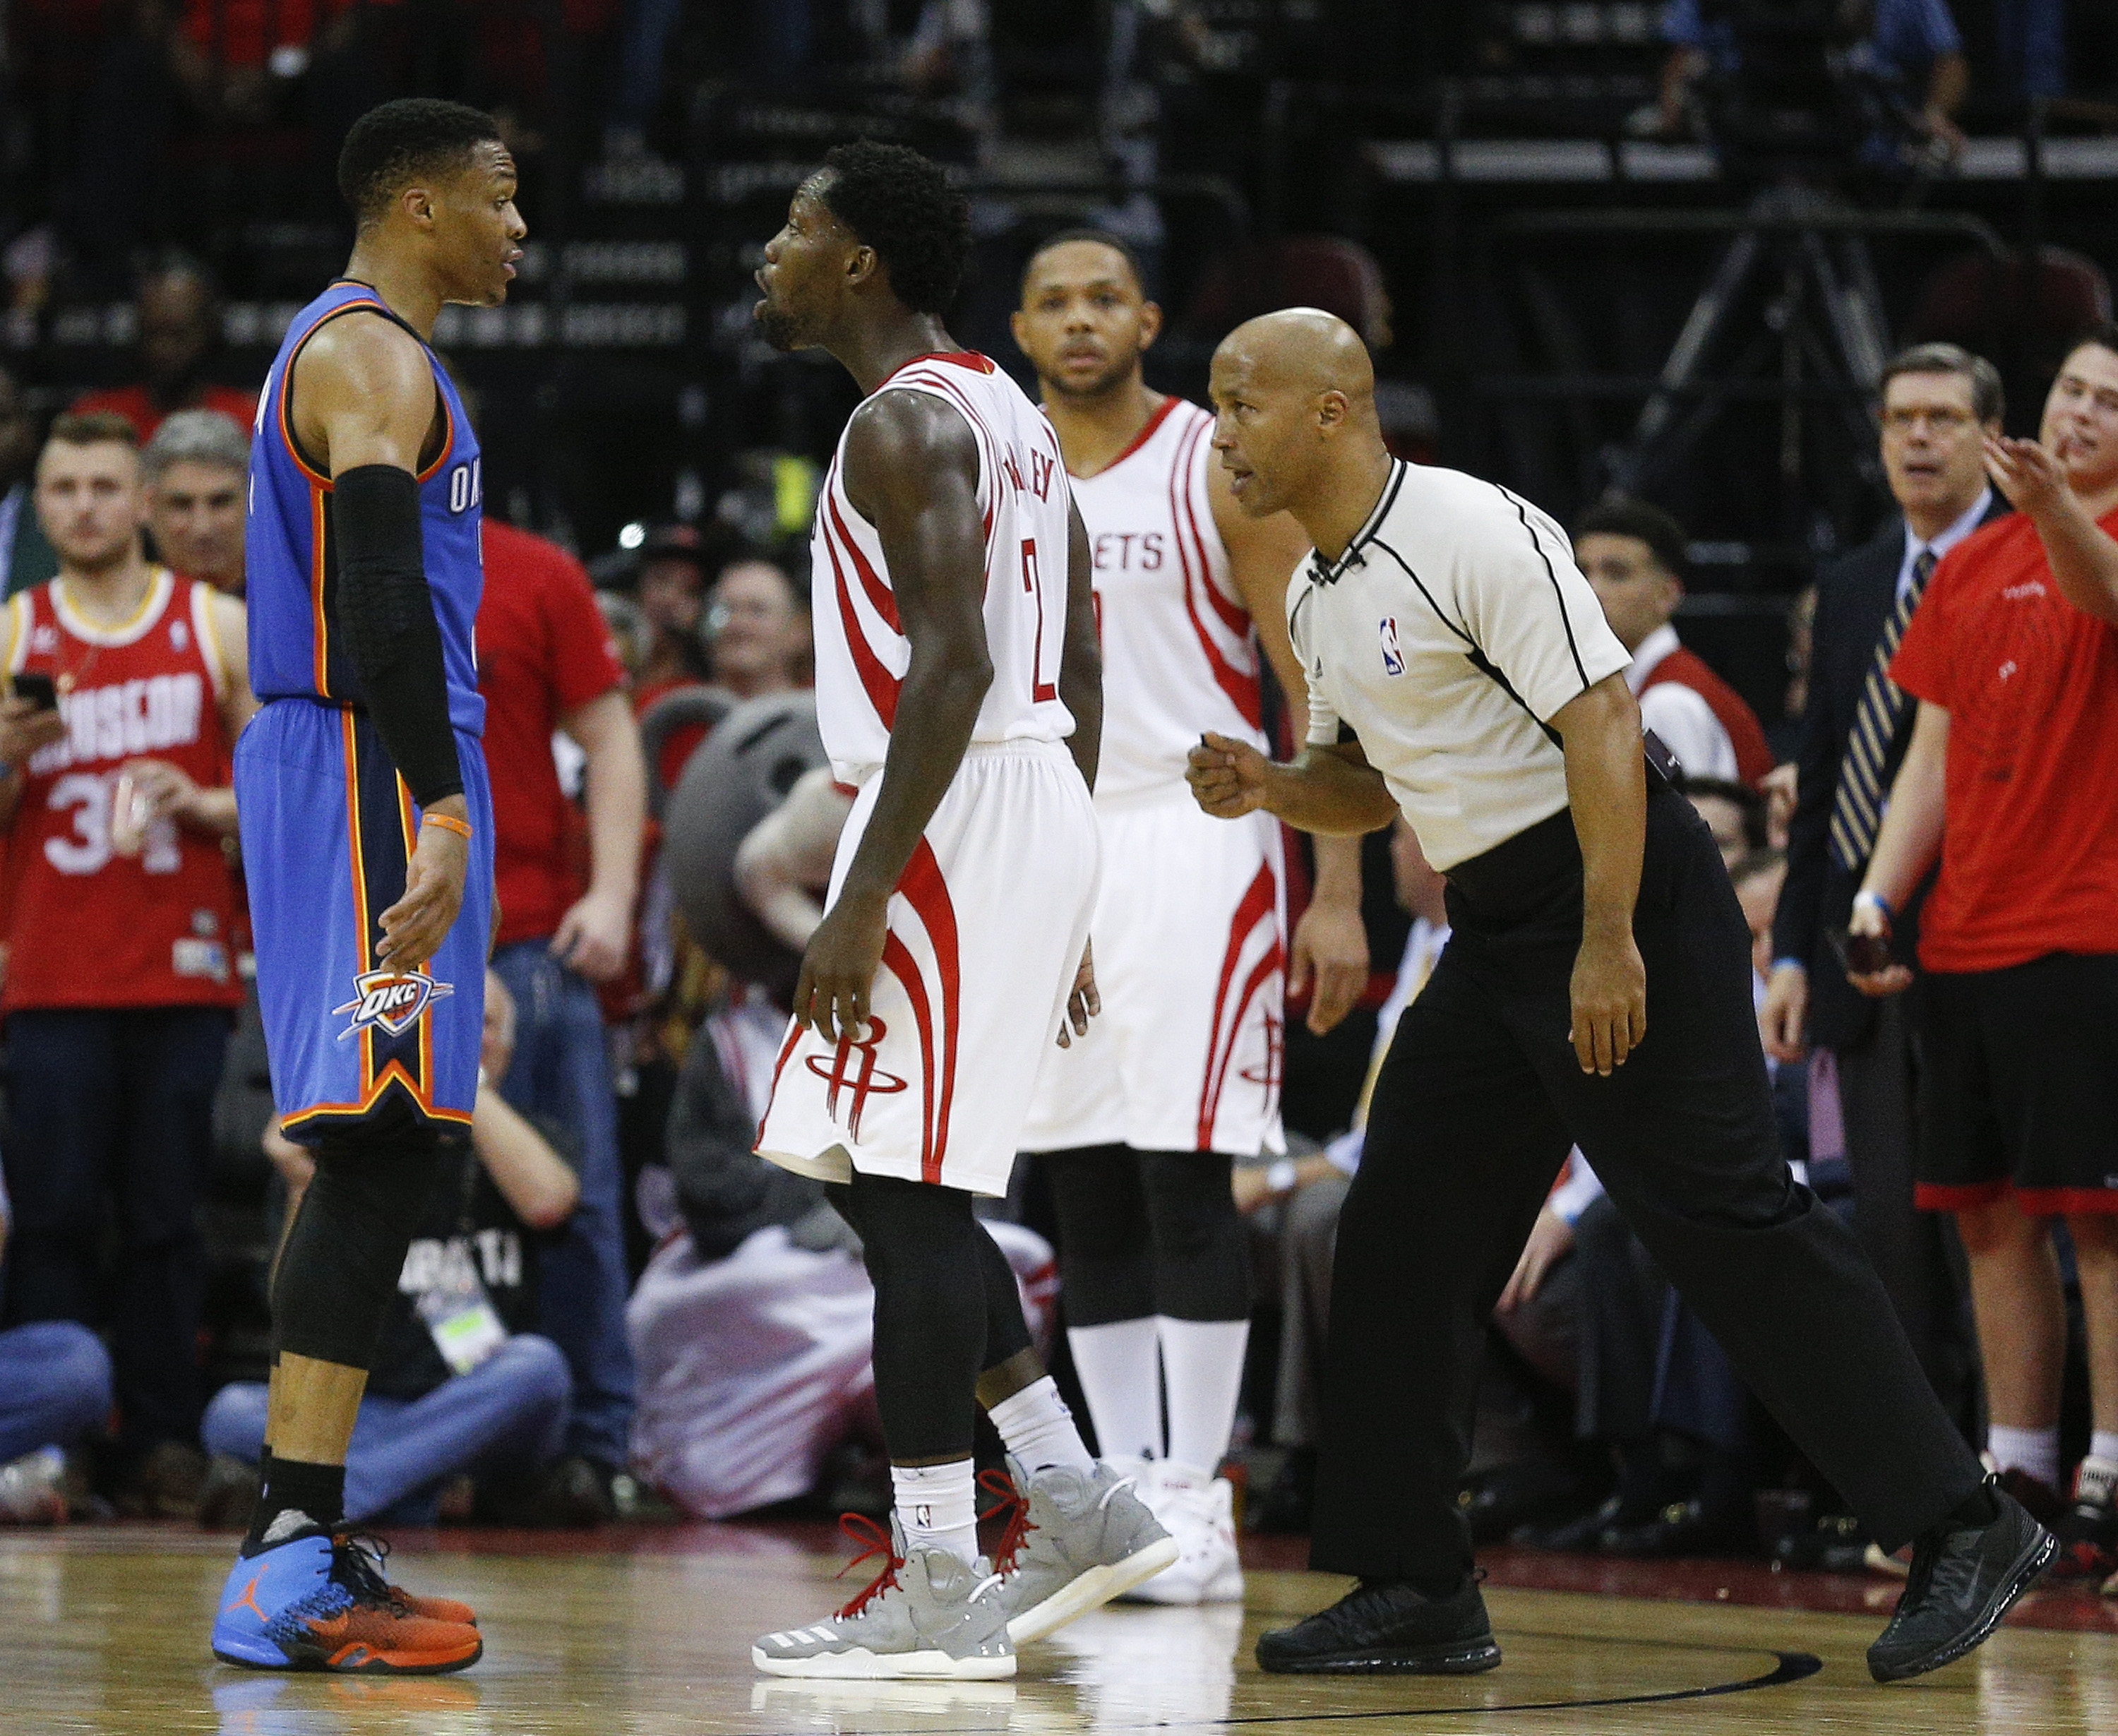 huge selection of 28f83 9184b Russell Westbrook (No. 0) of the Oklahoma City Thunder and Patrick Beverley  (No. 2) of the Houston Rockets confront each other in the fourth quarter  during ...